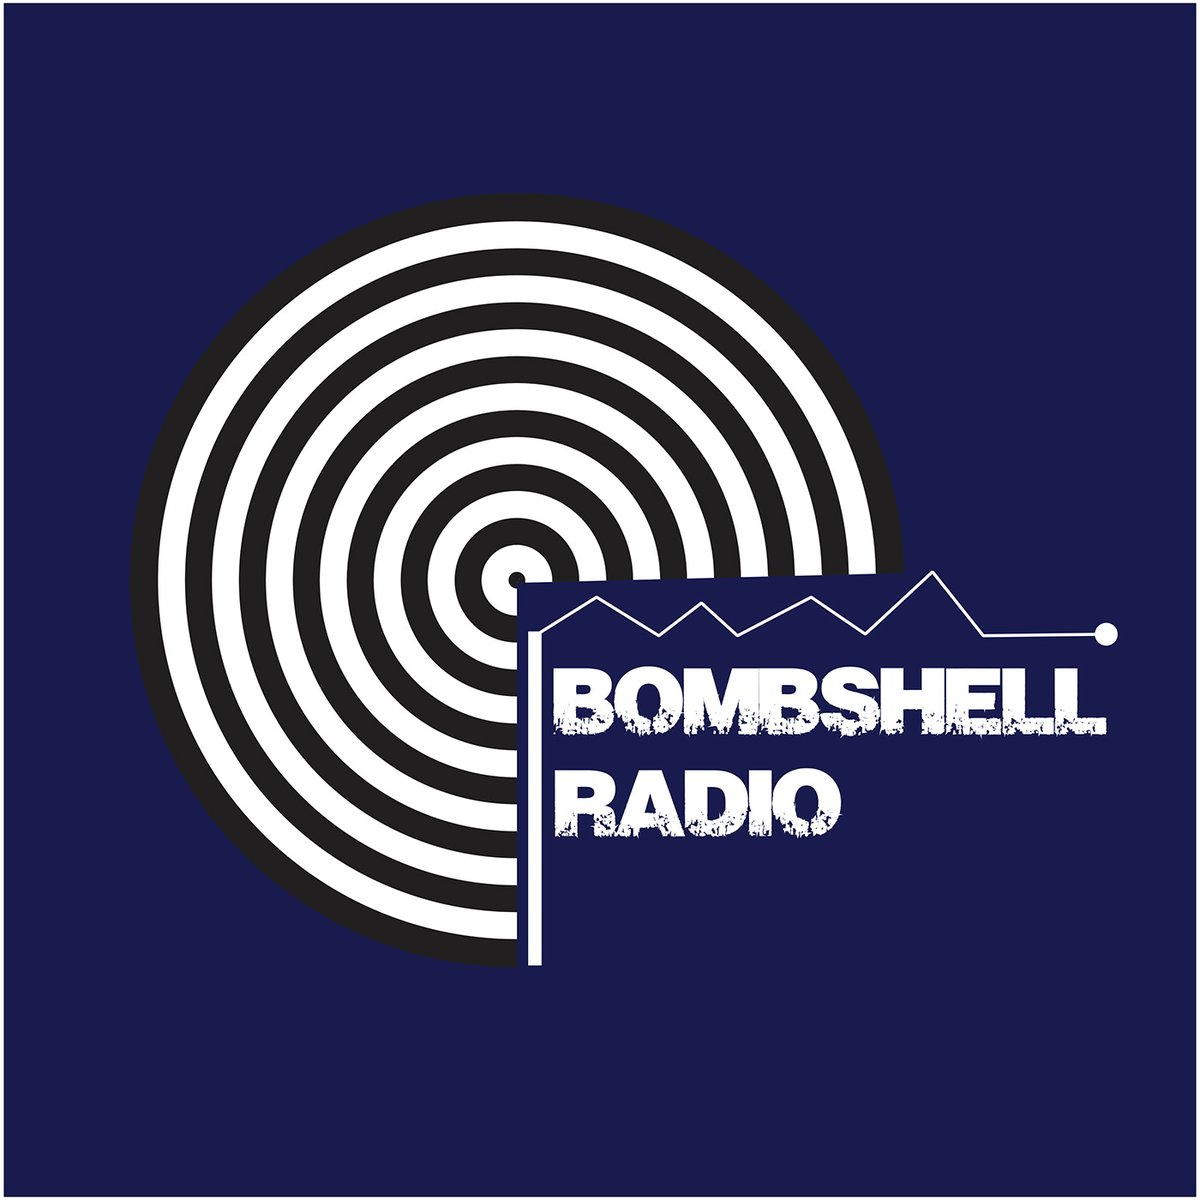 Submit Now To Be Heard On Bombshell Radio's Top 10 Countdown